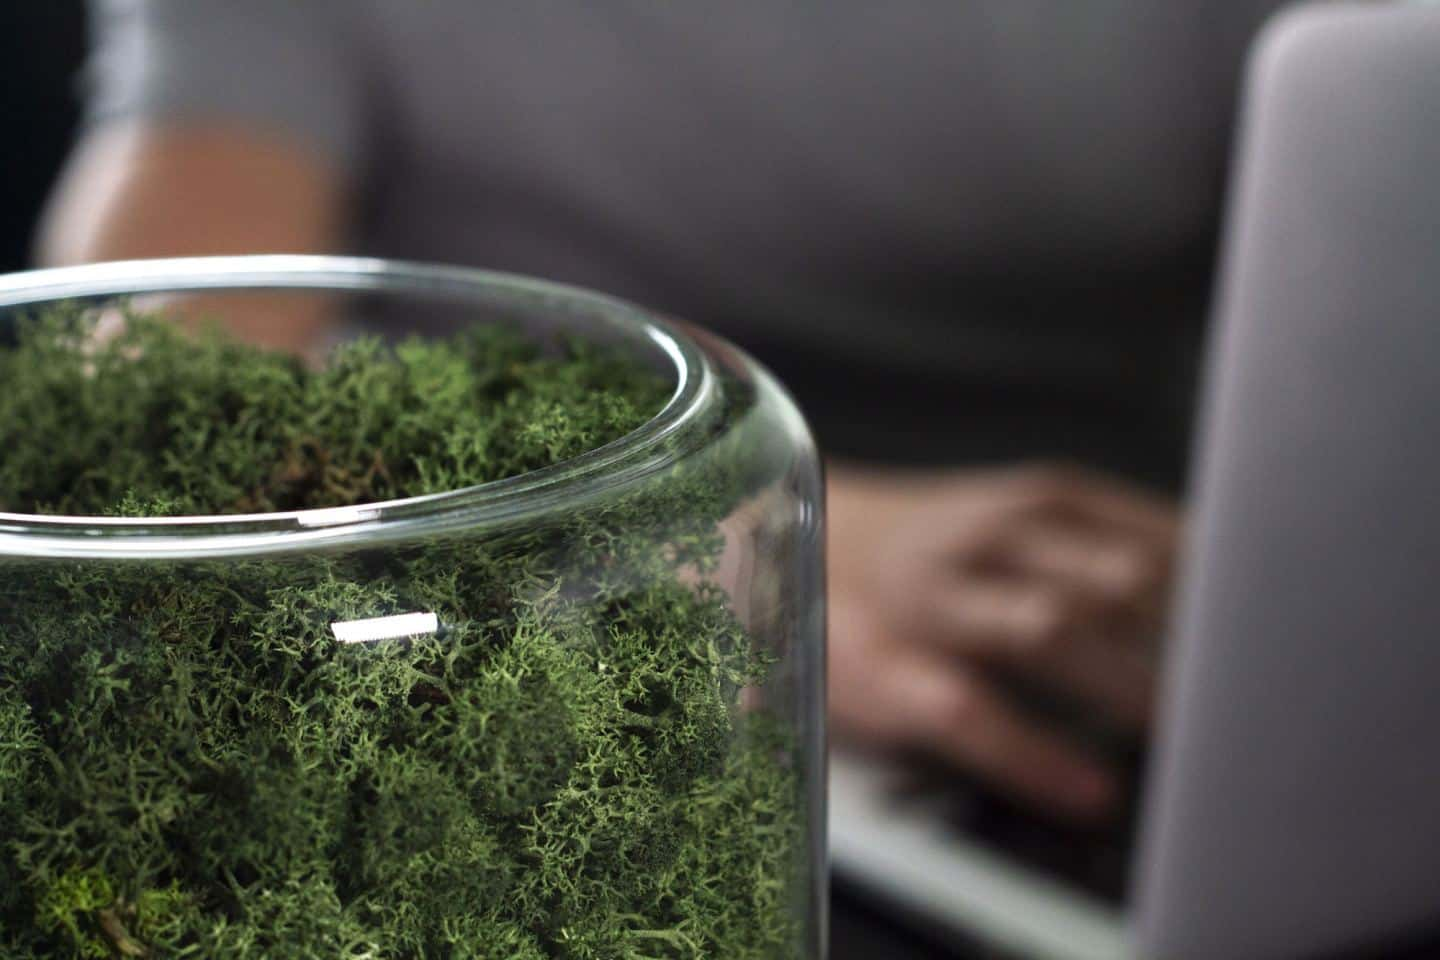 The Briiv sustainable and natural air purifier seen from above with a man working on a laptop in the background